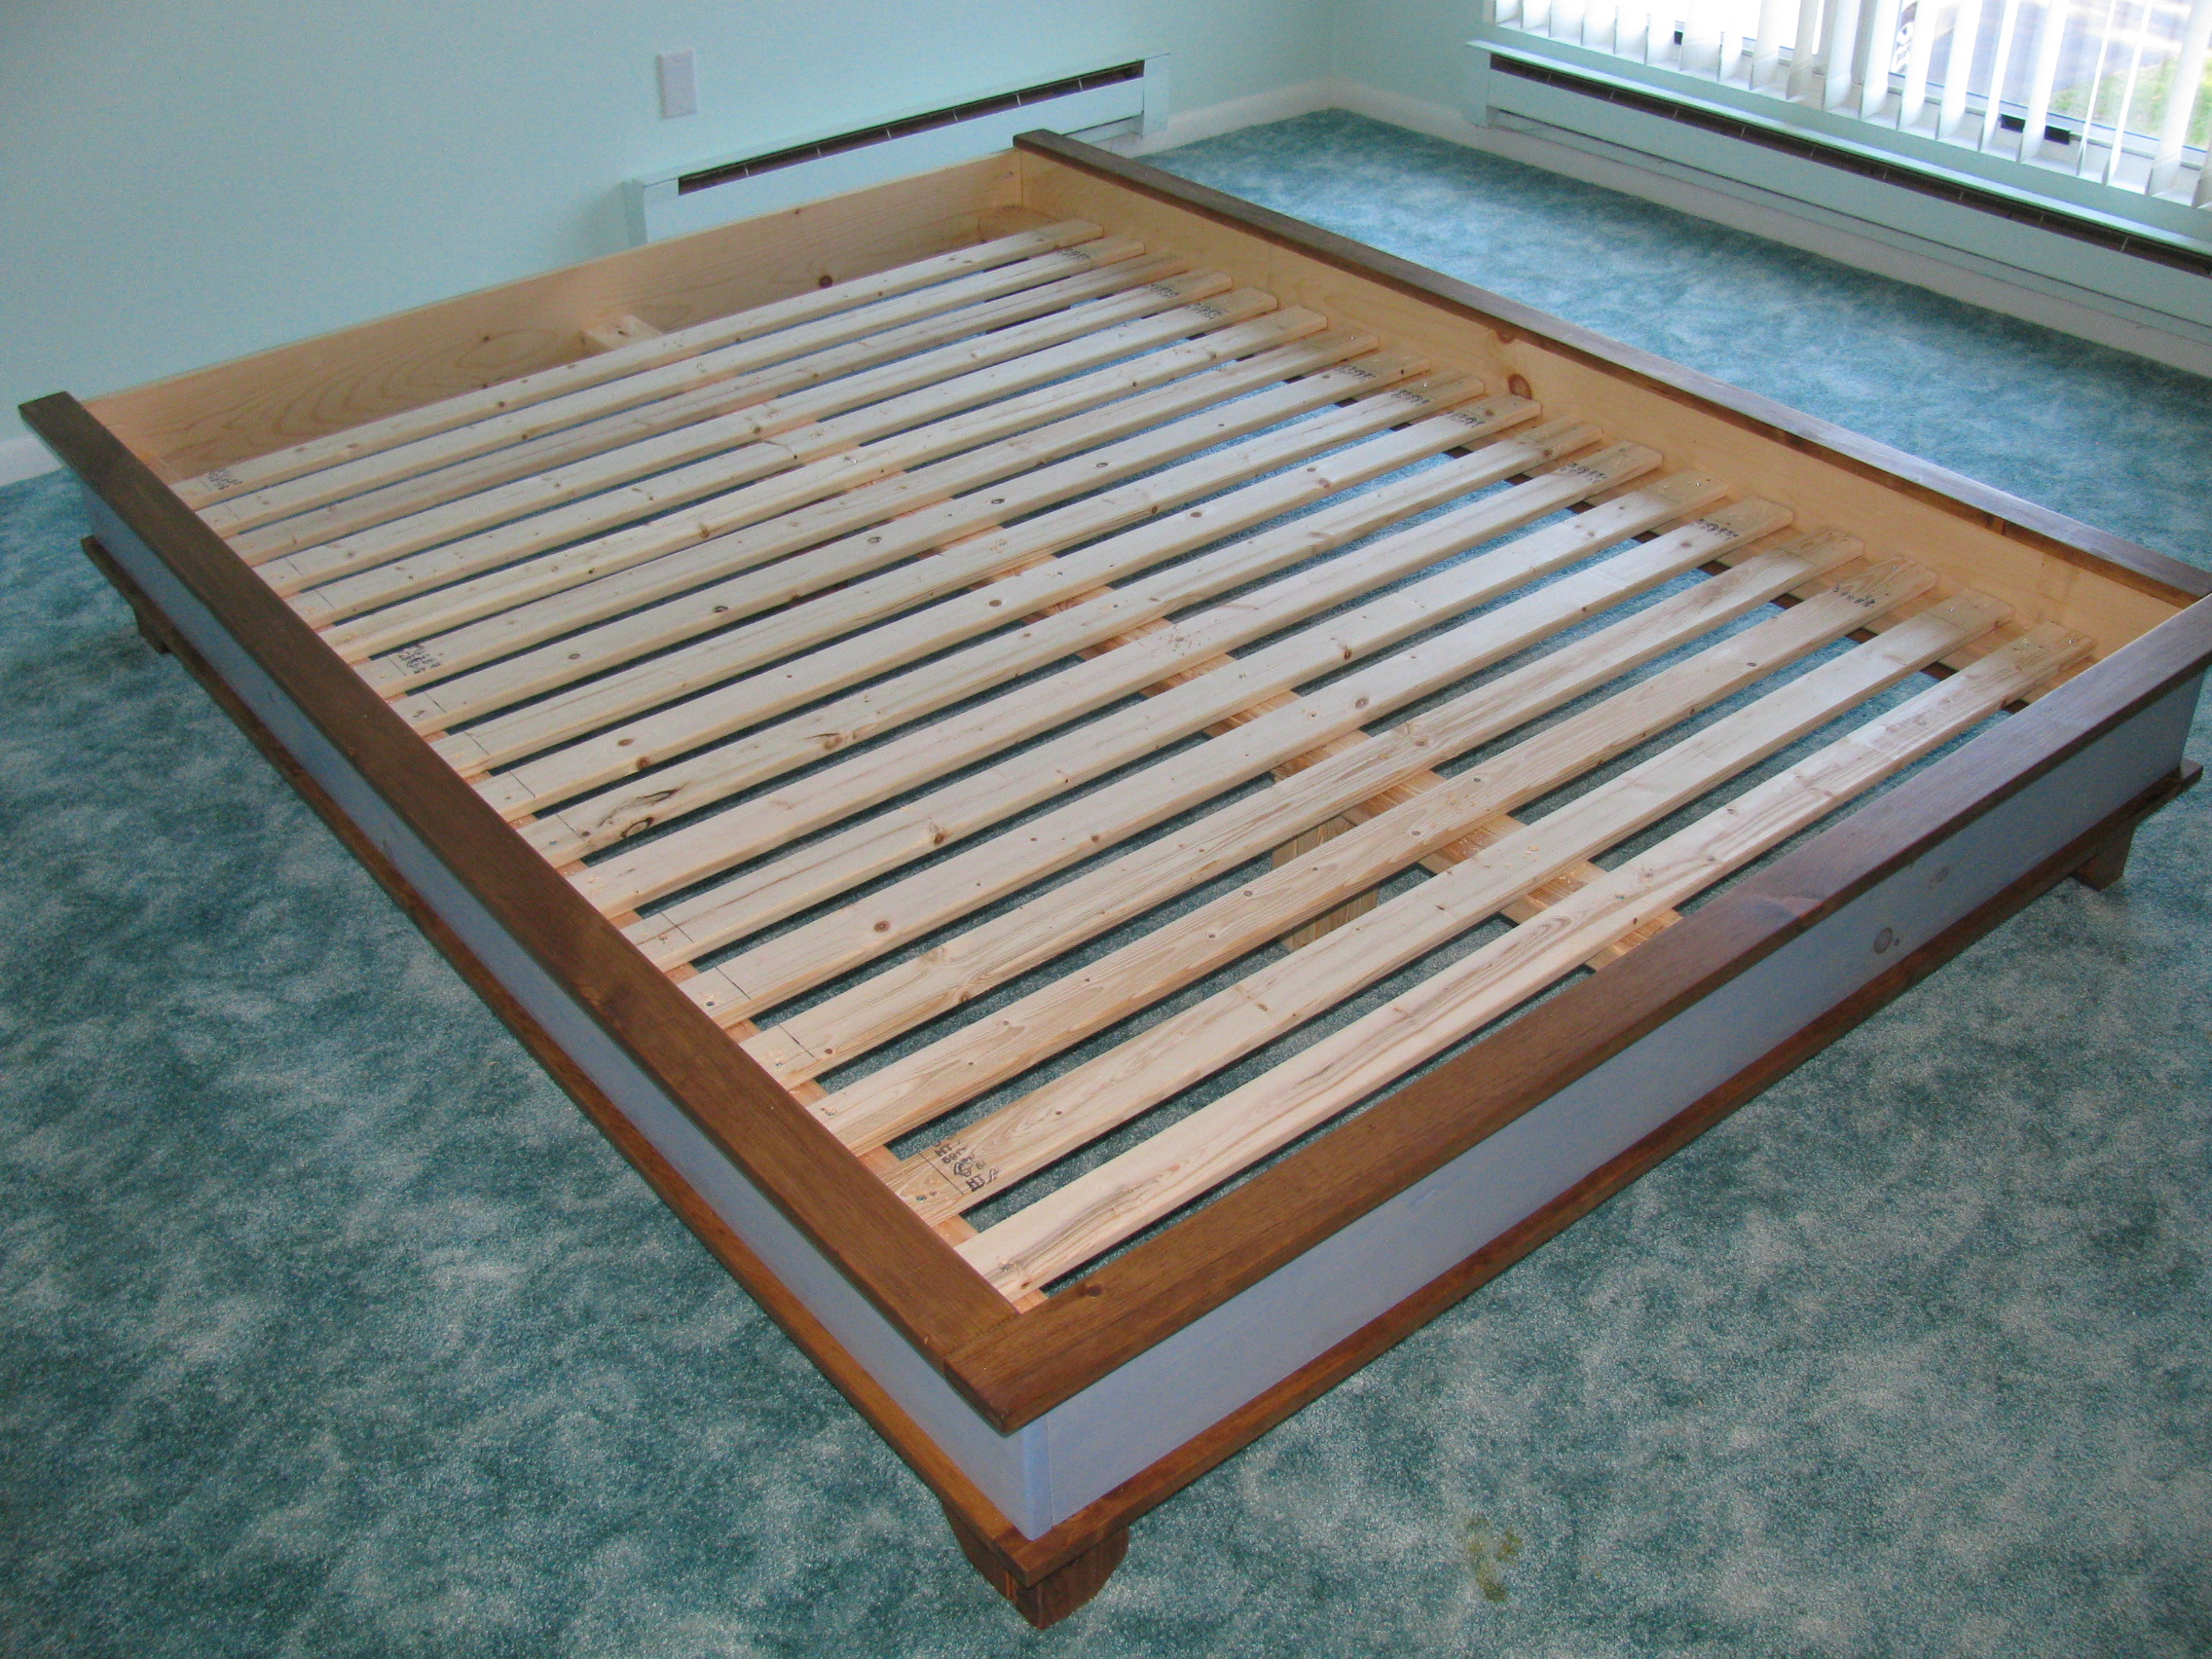 Using Furring Strips For Bed Slats